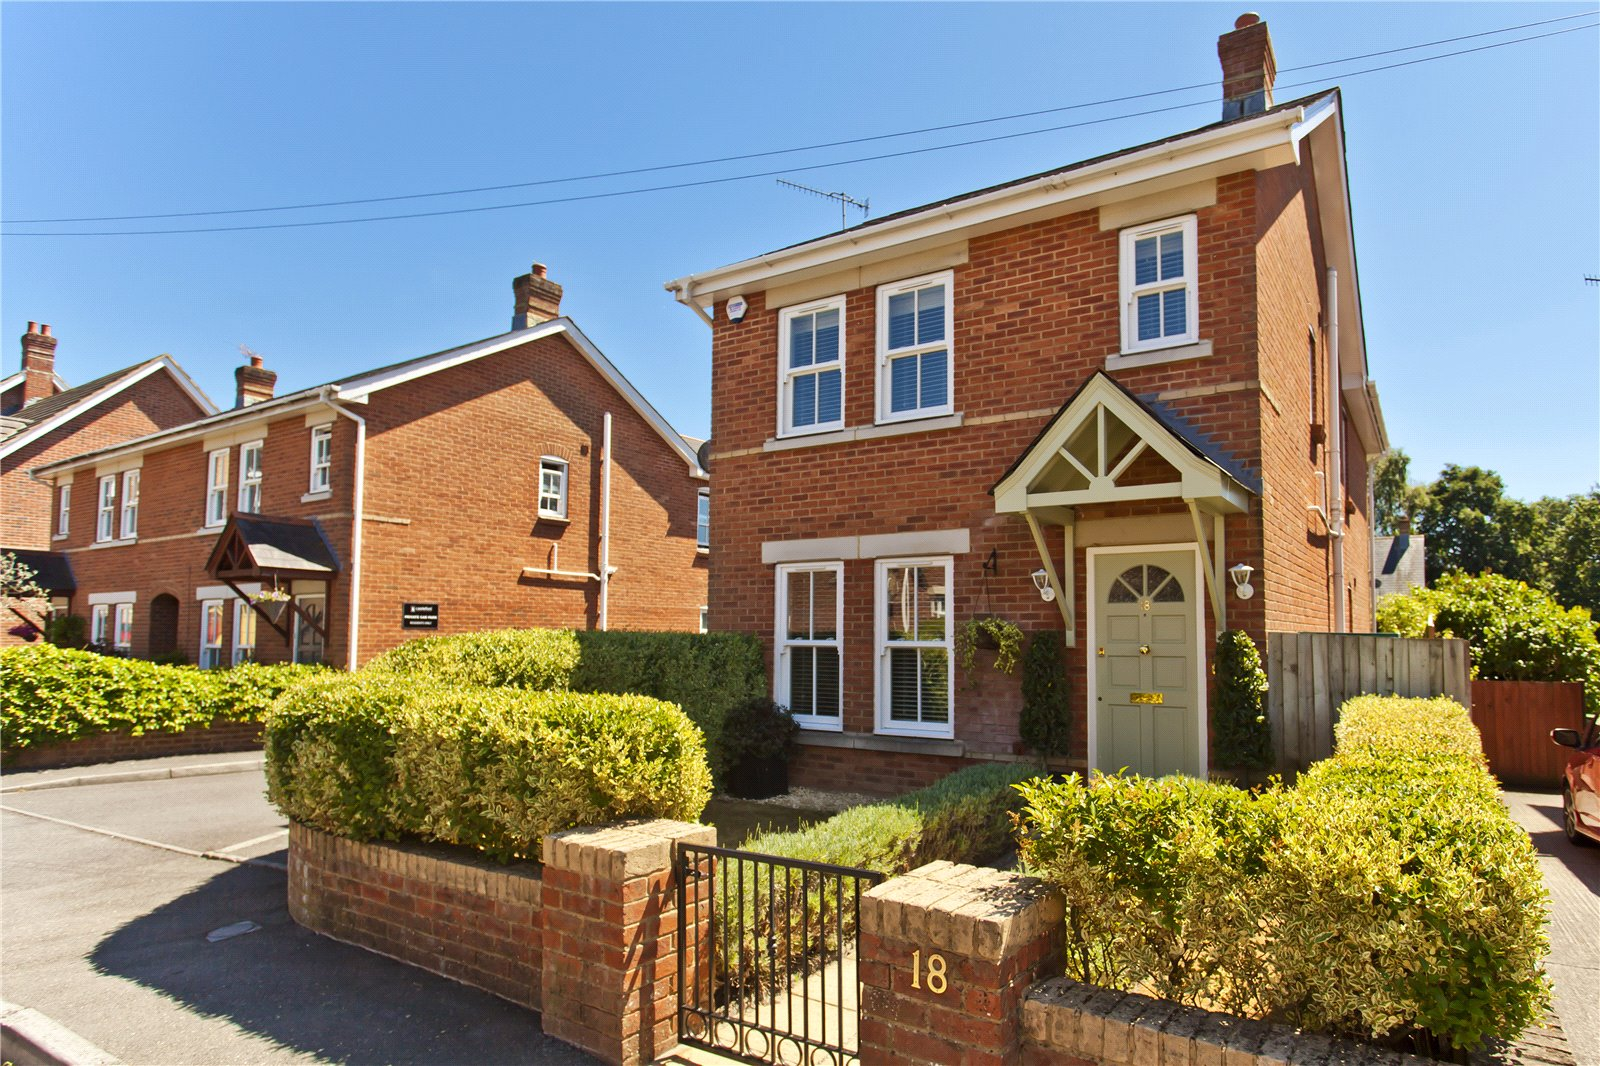 3 bed house for sale in Wessex Road, Lower Parkstone, BH14